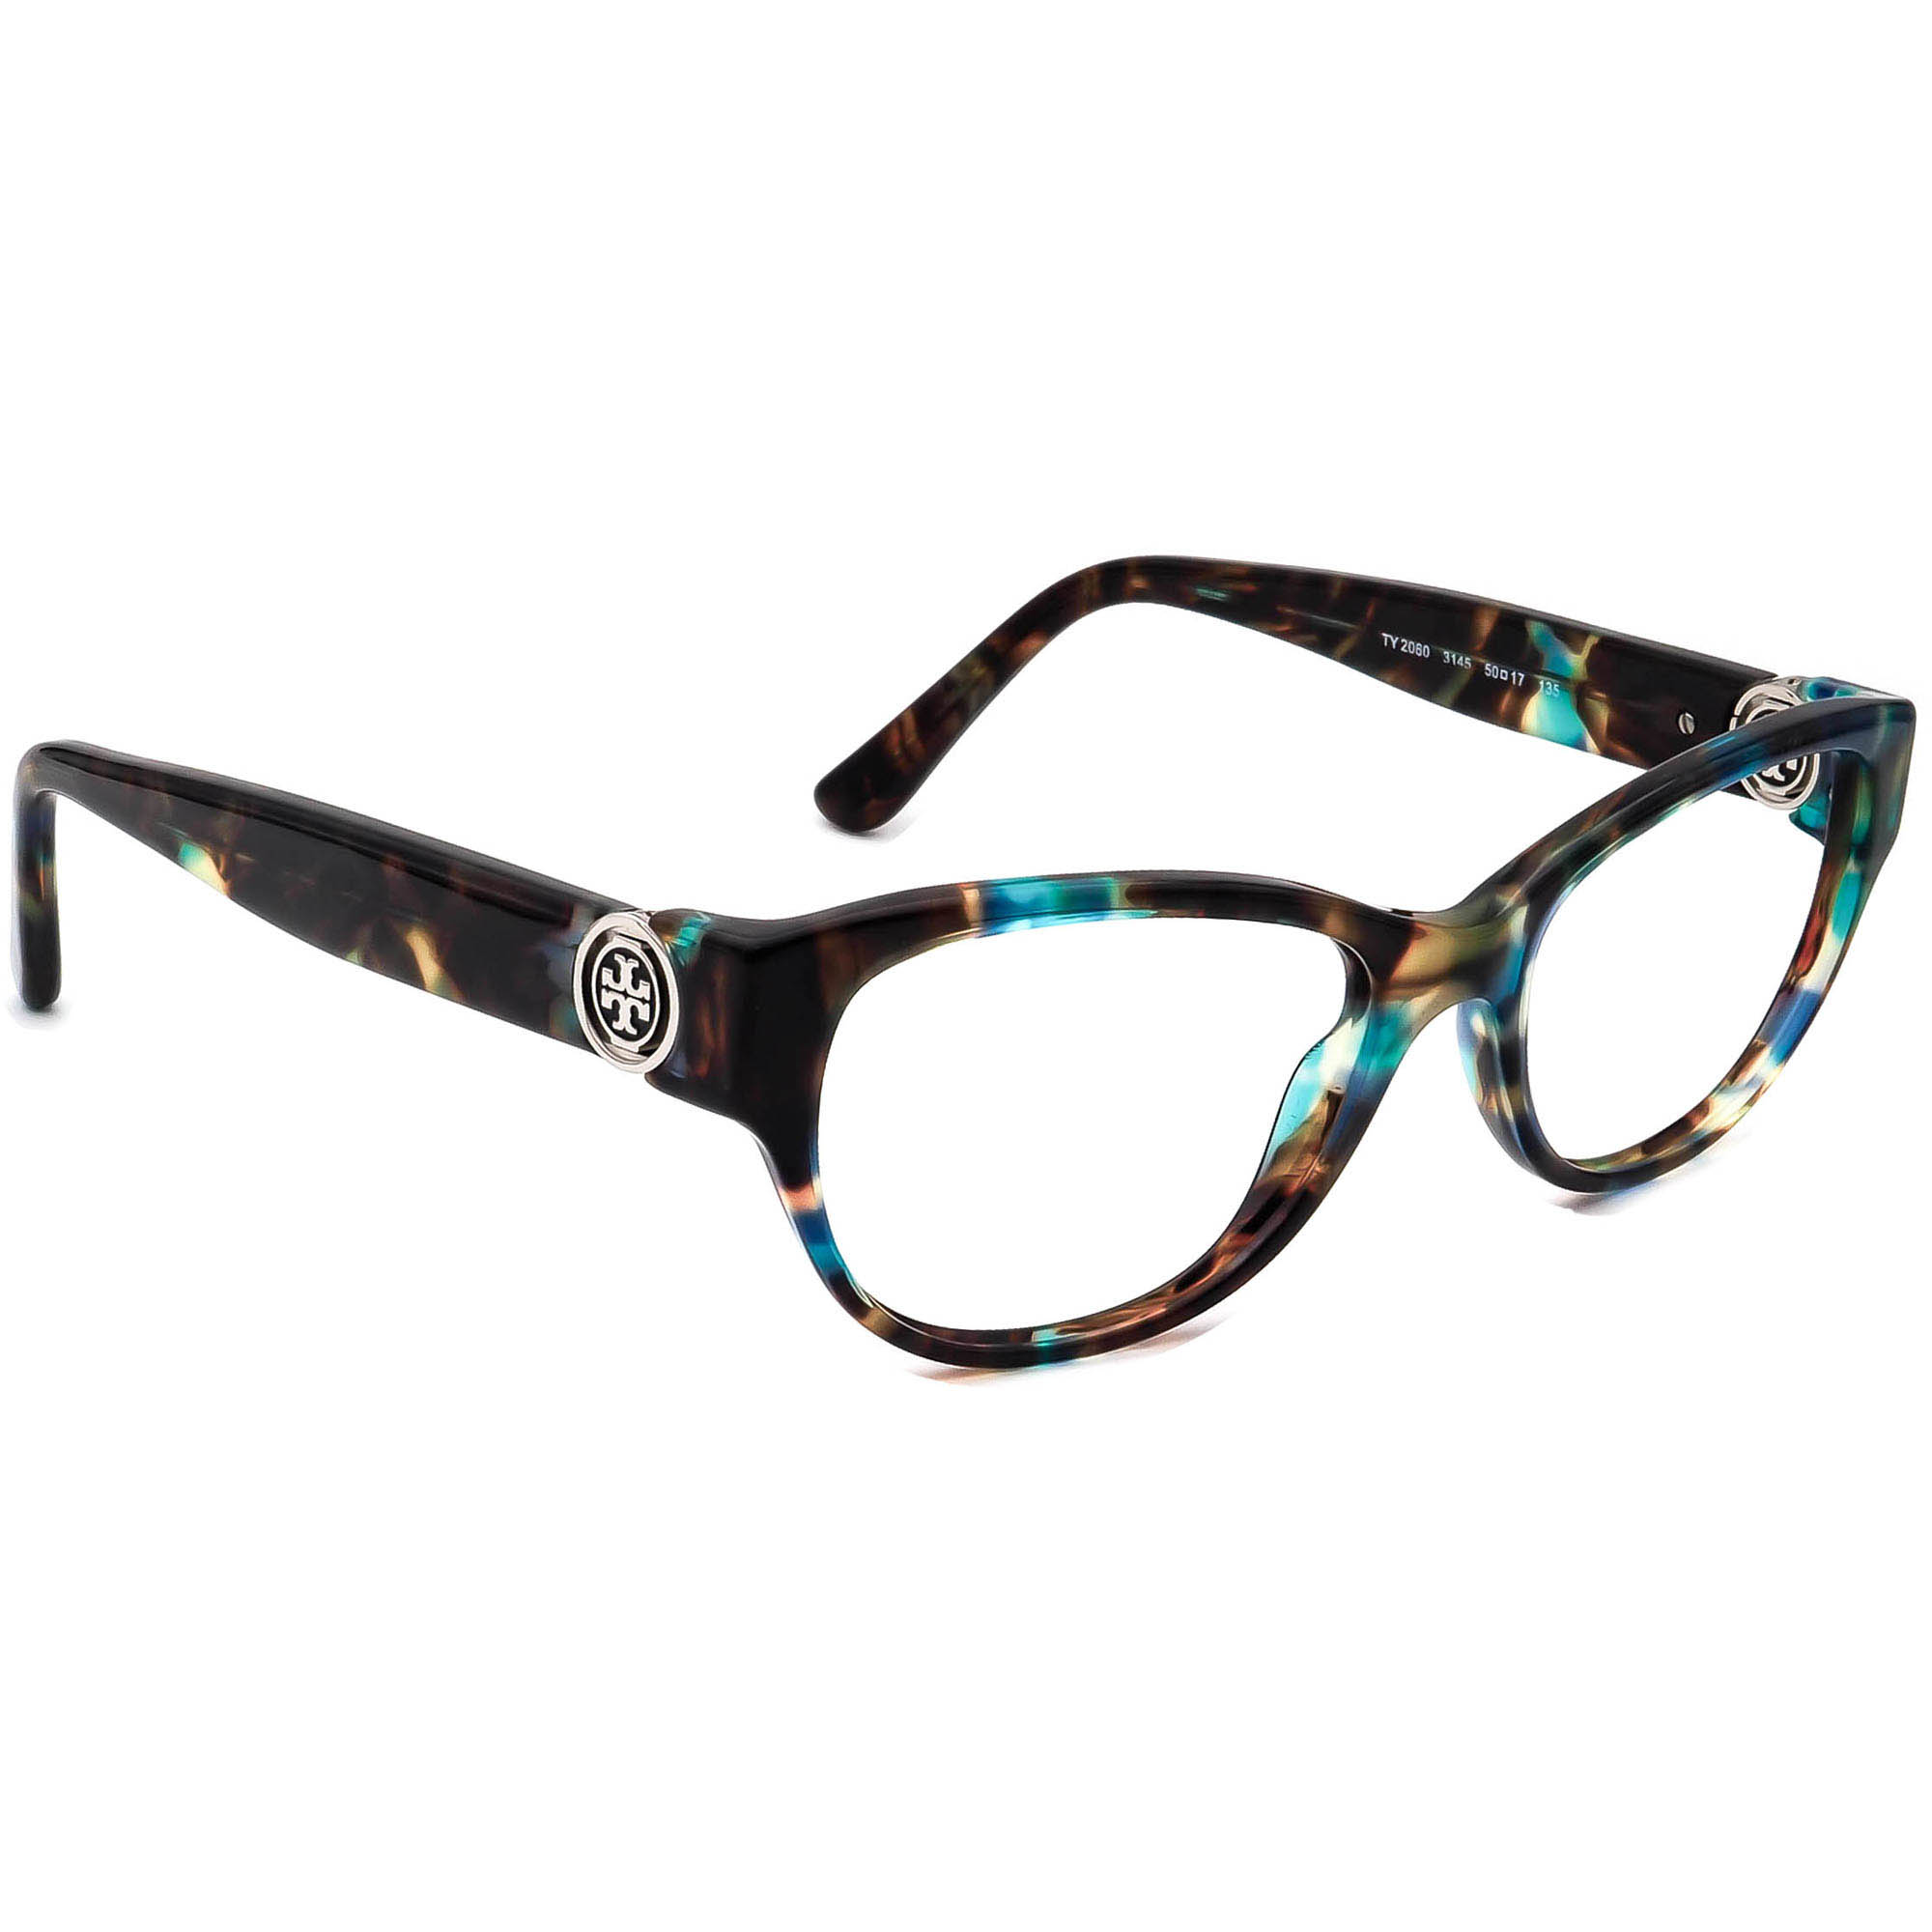 Tory Burch TY 2060 3145 Eyeglasses